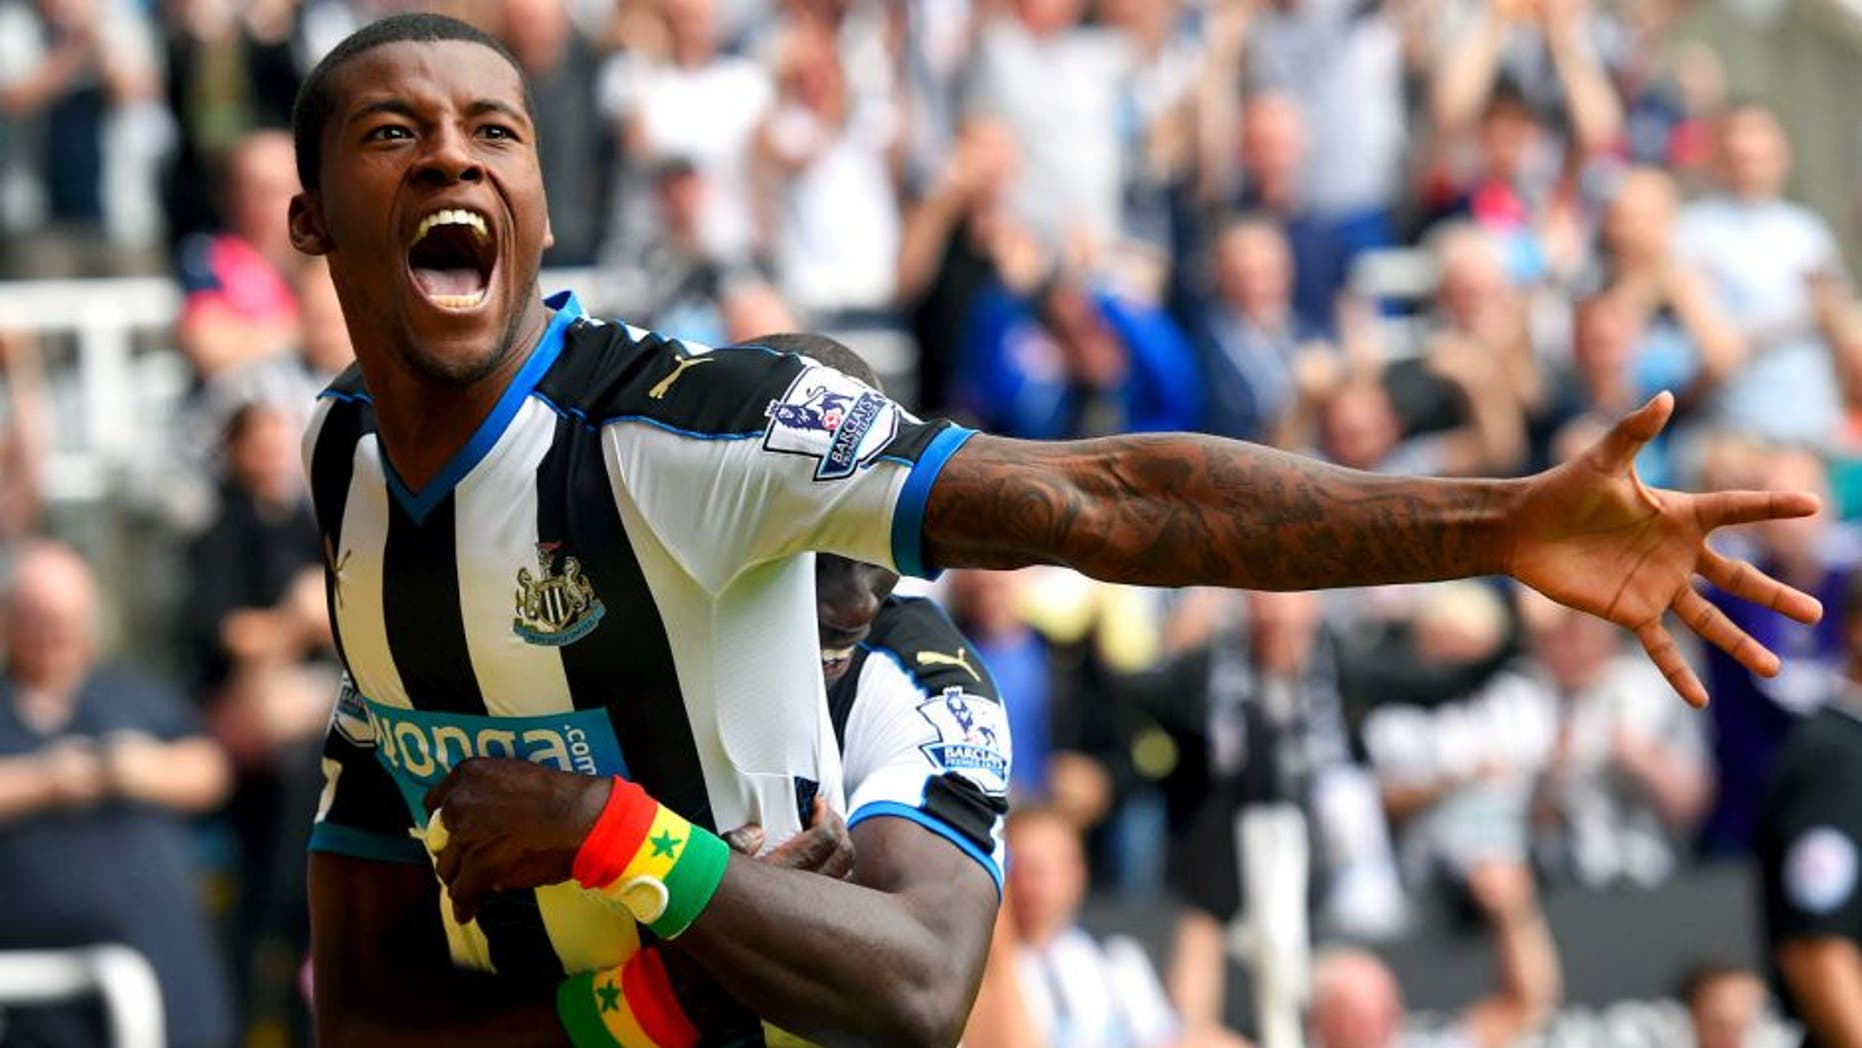 NEWCASTLE UPON TYNE, ENGLAND - AUGUST 09: Georginio Wijnaldum of Newcastle United celebrates scoring their second goal with Papiss Demba Cisse of Newcastle United during the Barclays Premier League match between Newcastle United and Southampton at St James' Park on August 9, 2015 in Newcastle upon Tyne, England. (Photo by Stu Forster/Getty Images)